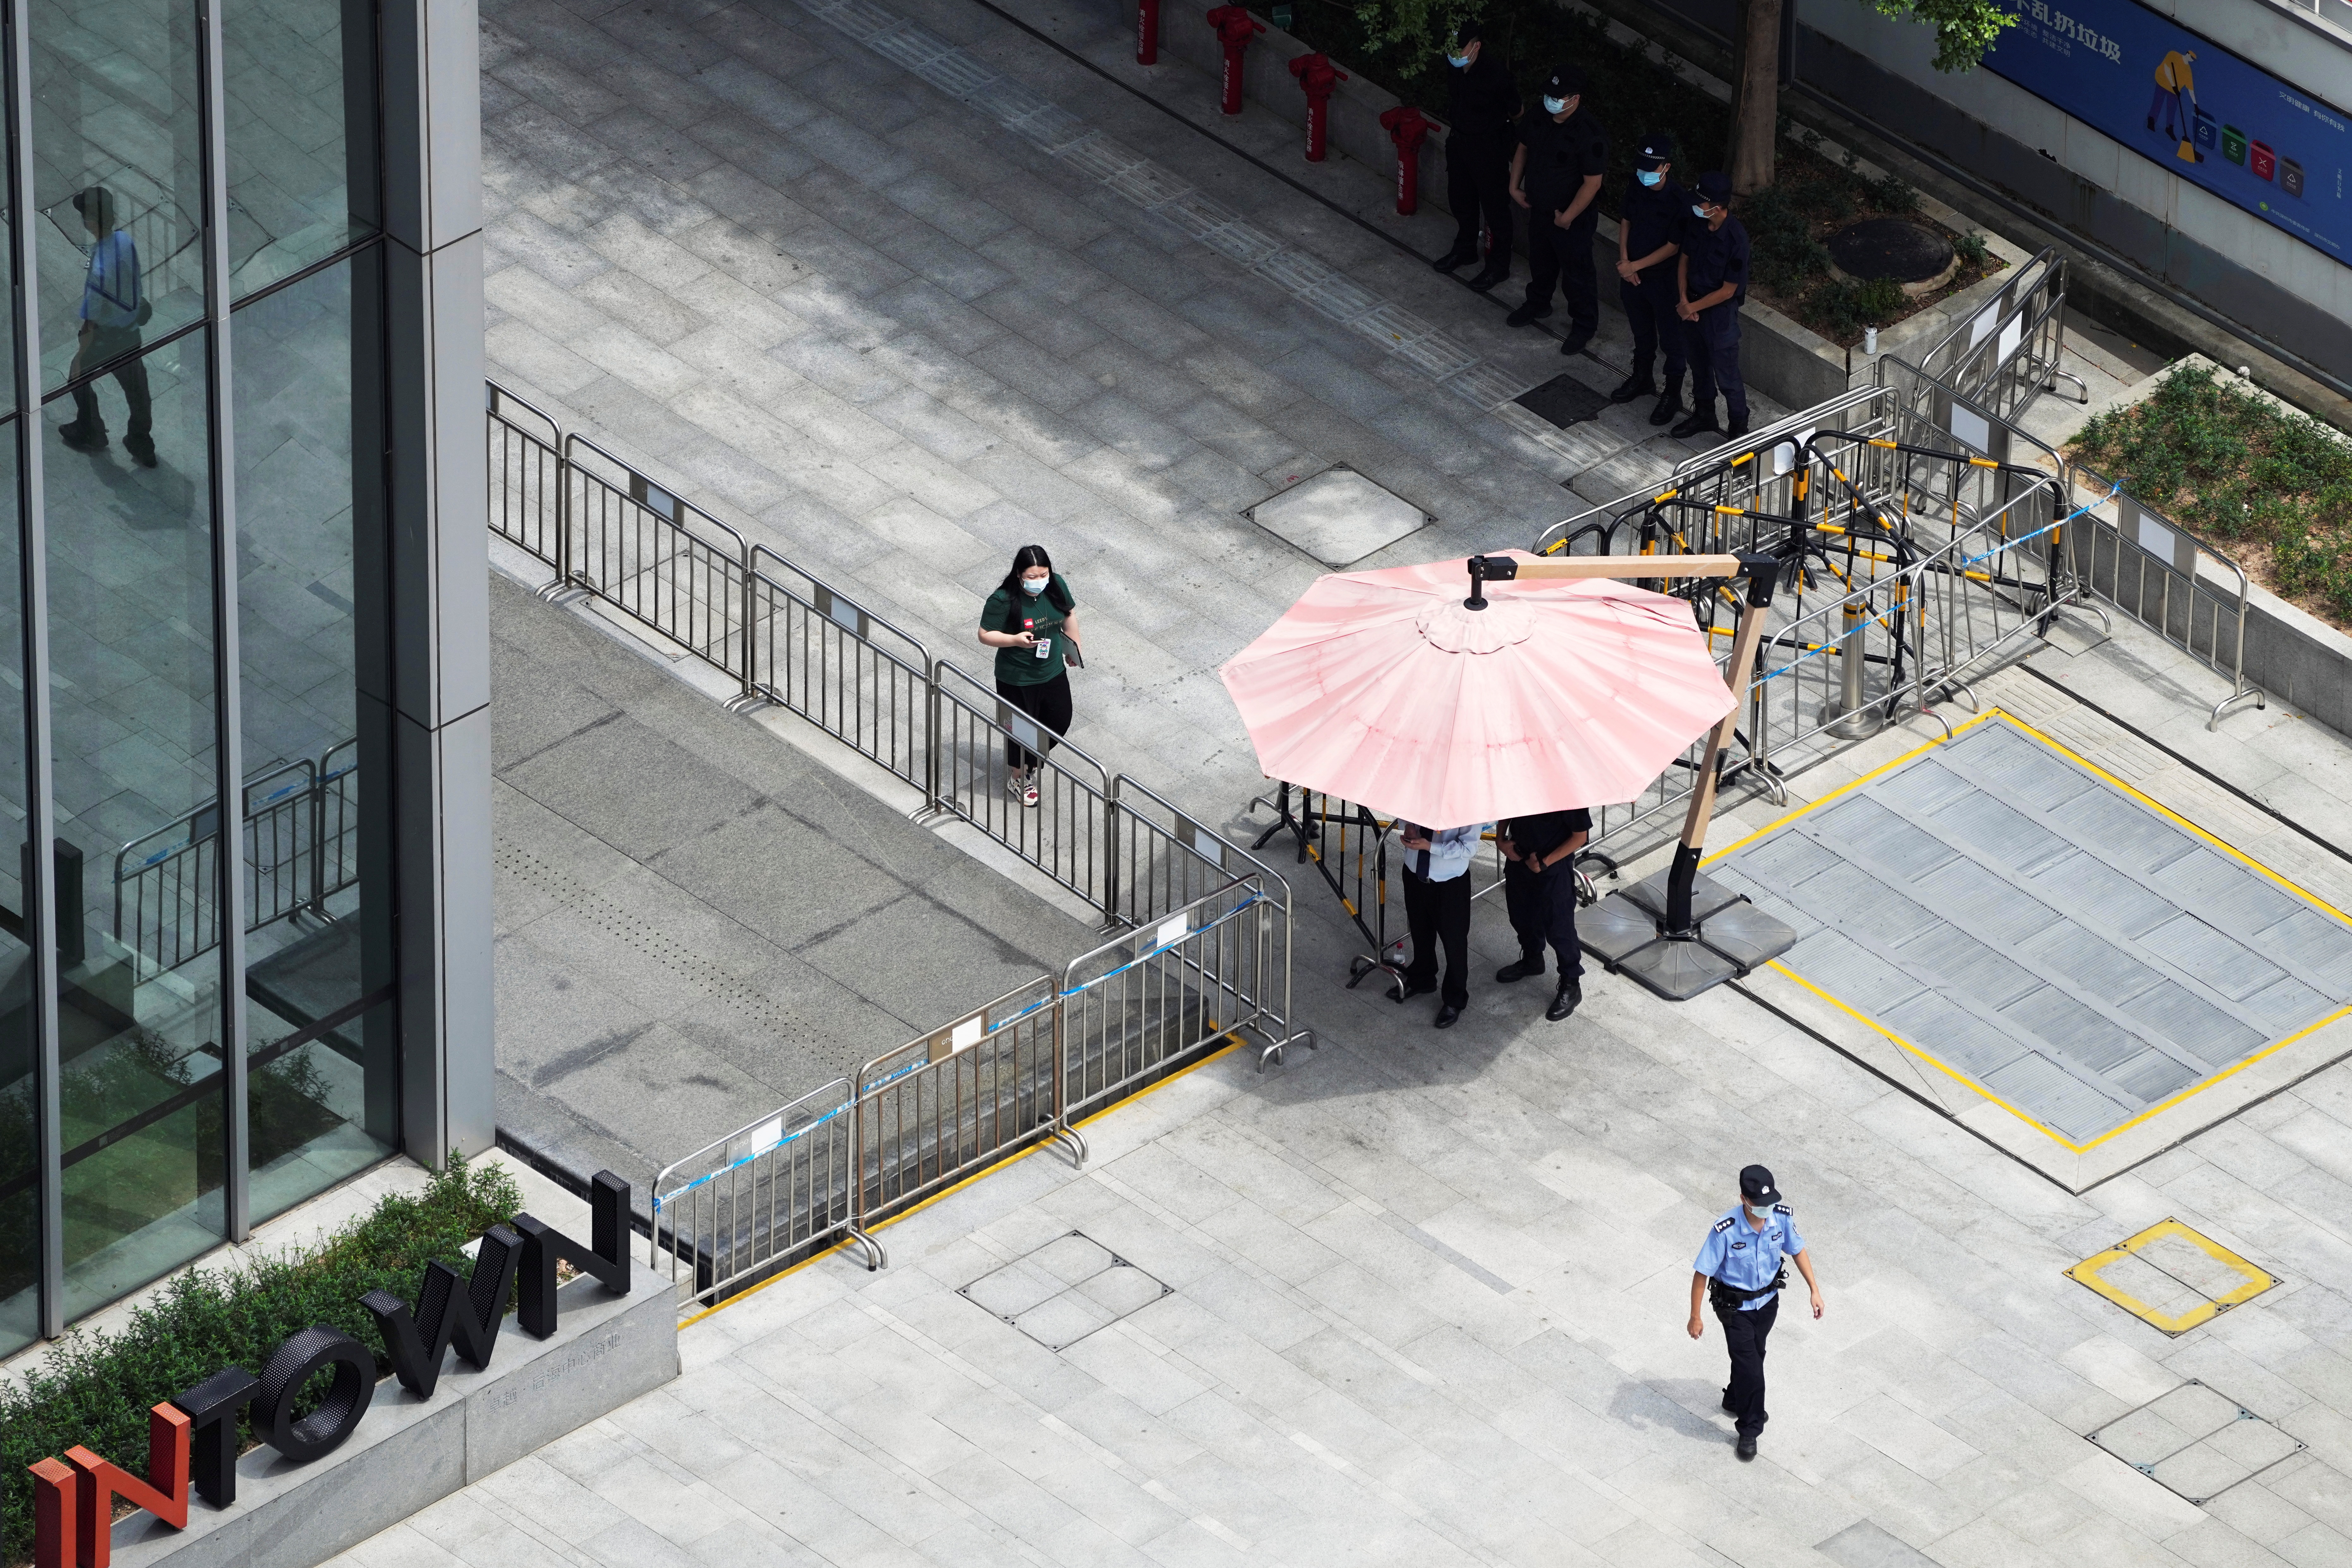 Police and security personnel keep watch outside the headquarters of China Evergrande Group in Shenzhen, Guangdong province, China September 26, 2021. REUTERS/Aly Song